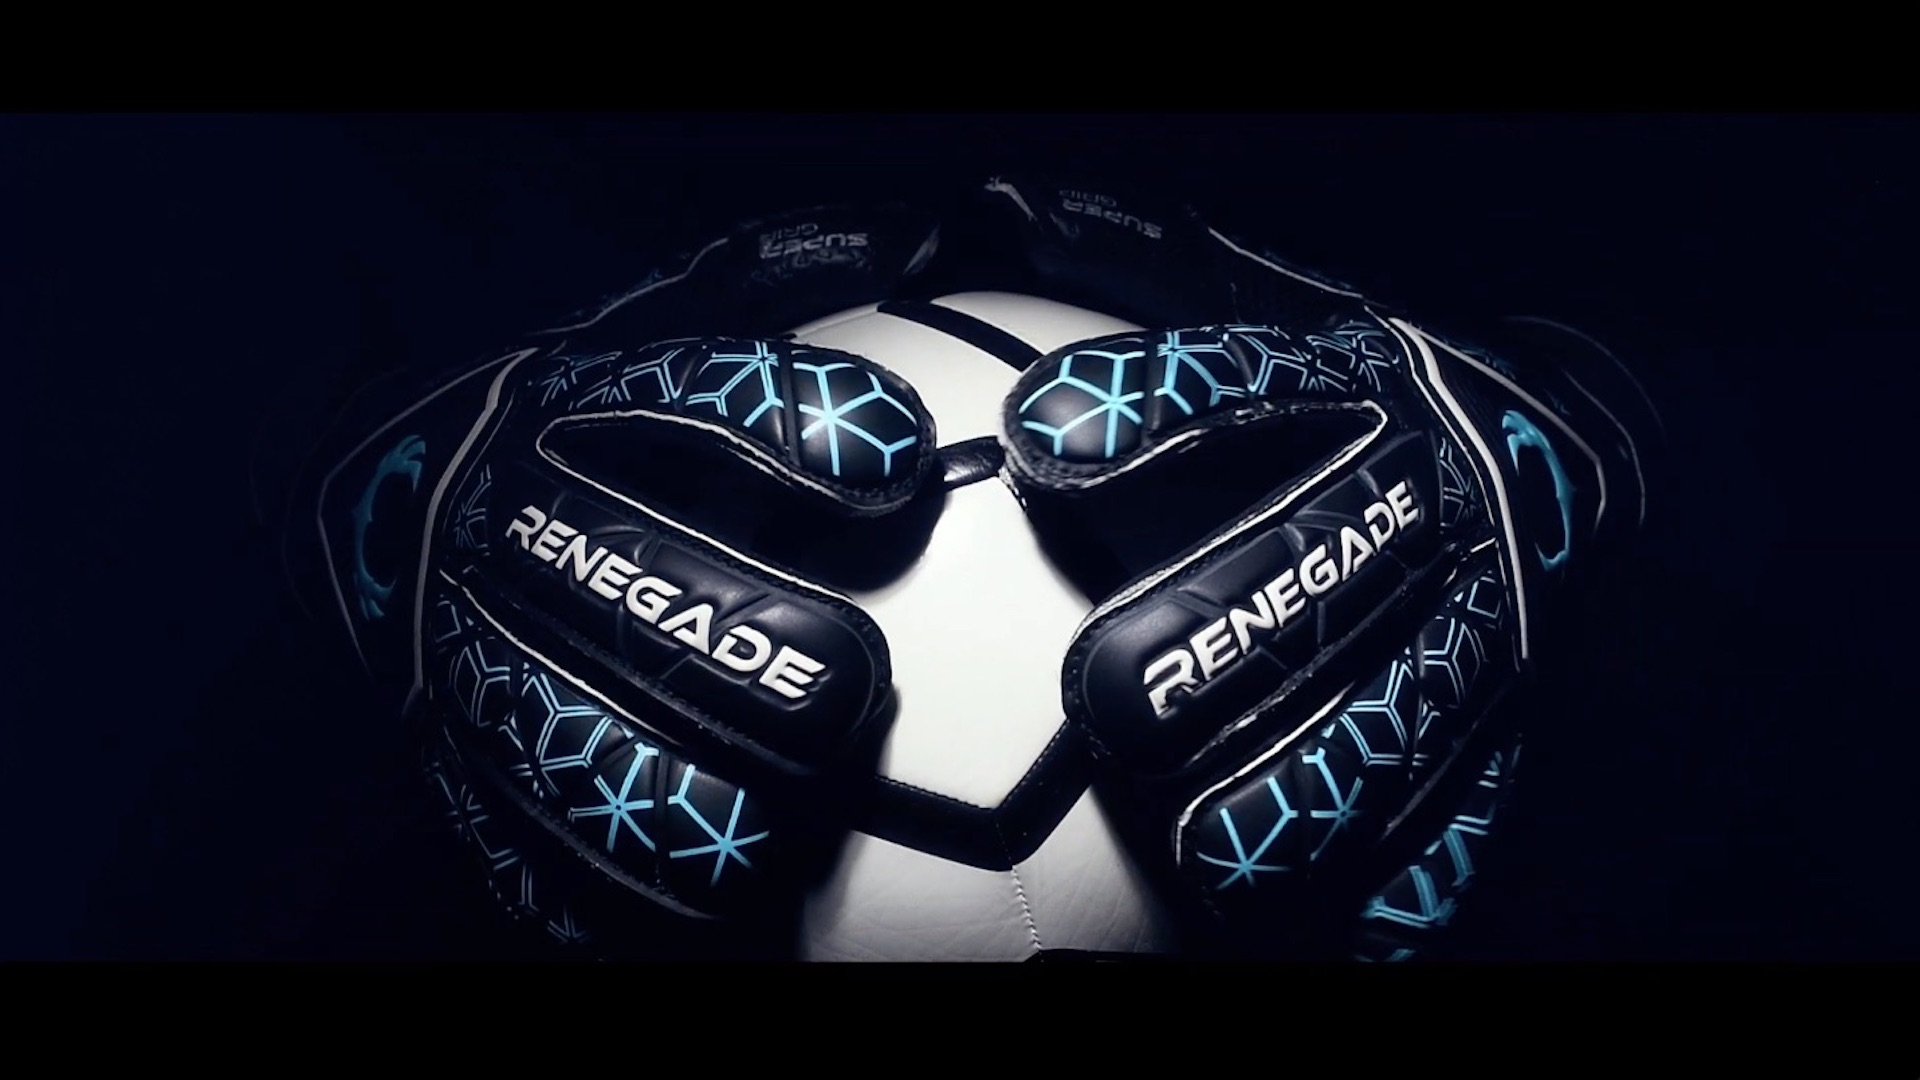 Renegade GK Talon Goalie Gloves with Pro-Tee Fingersaves & Hyper Grip Palms (Comp. Level 2) - Amazing Goalkeeper Gloves, Exceptional Value - 30 Day Guar. - Sizes 5-11, 3 Styles/Cuts